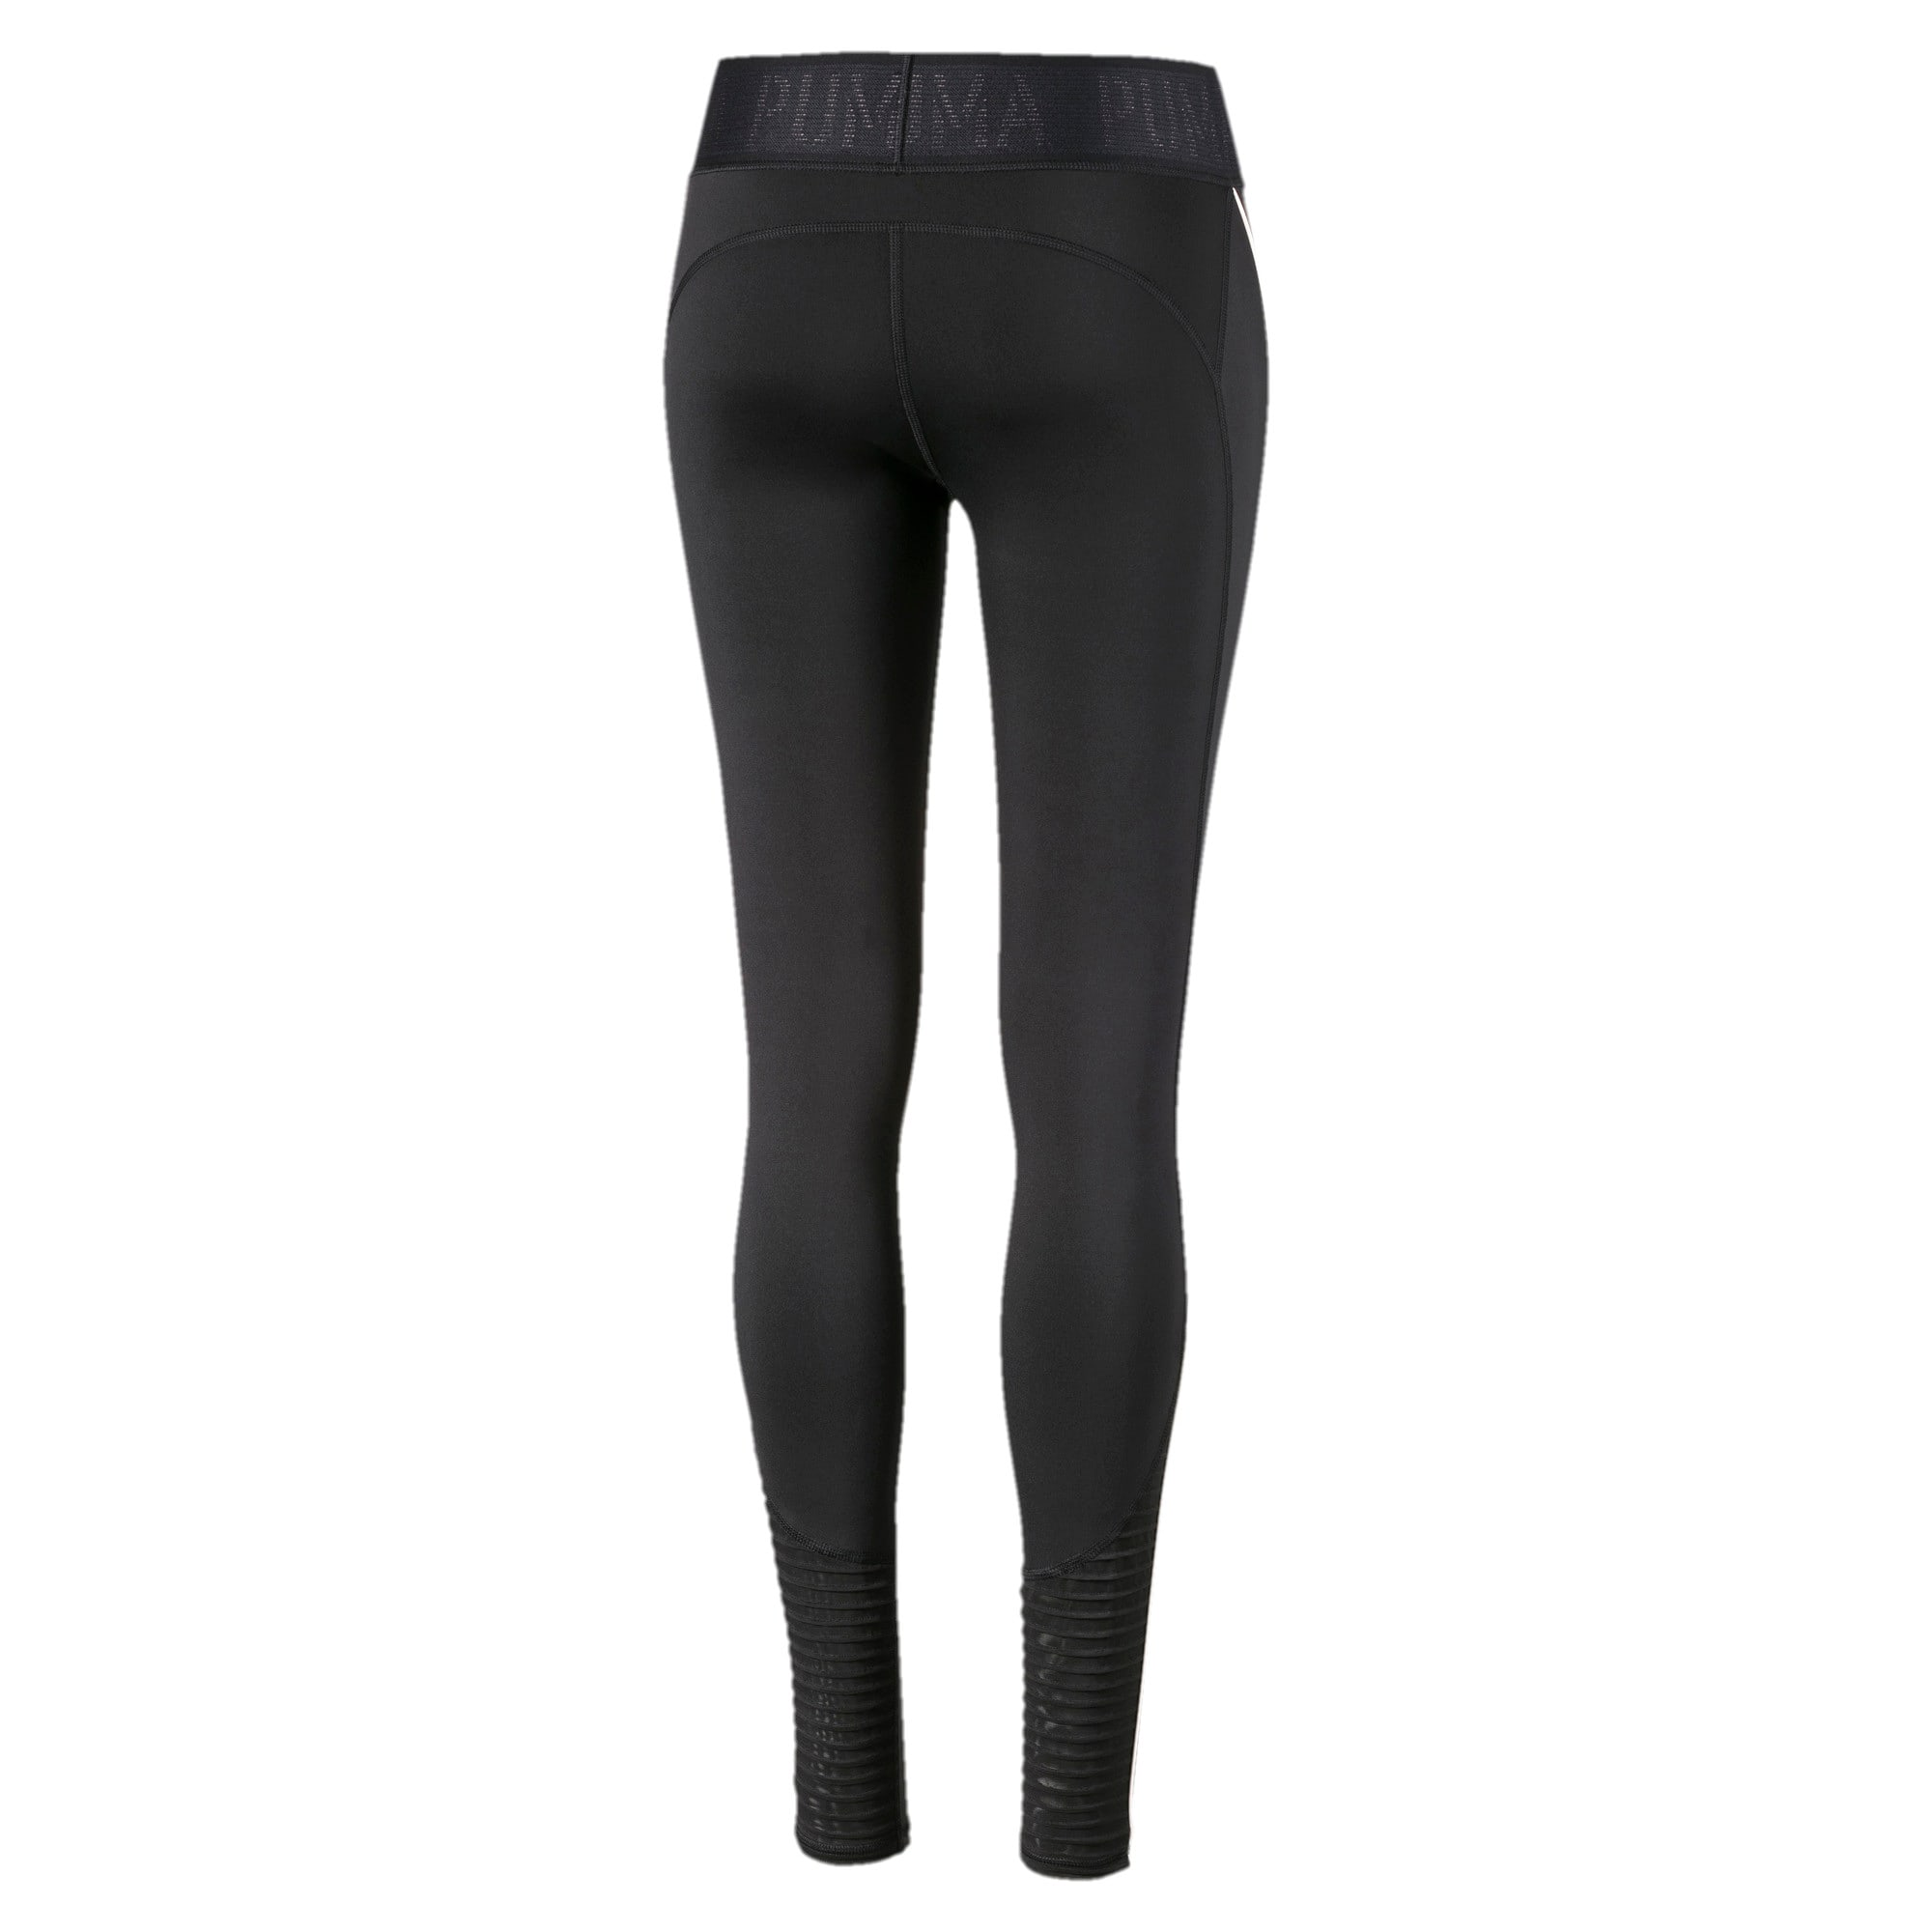 Thumbnail 5 of SHIFT Women's Training Leggings, Puma Black, medium